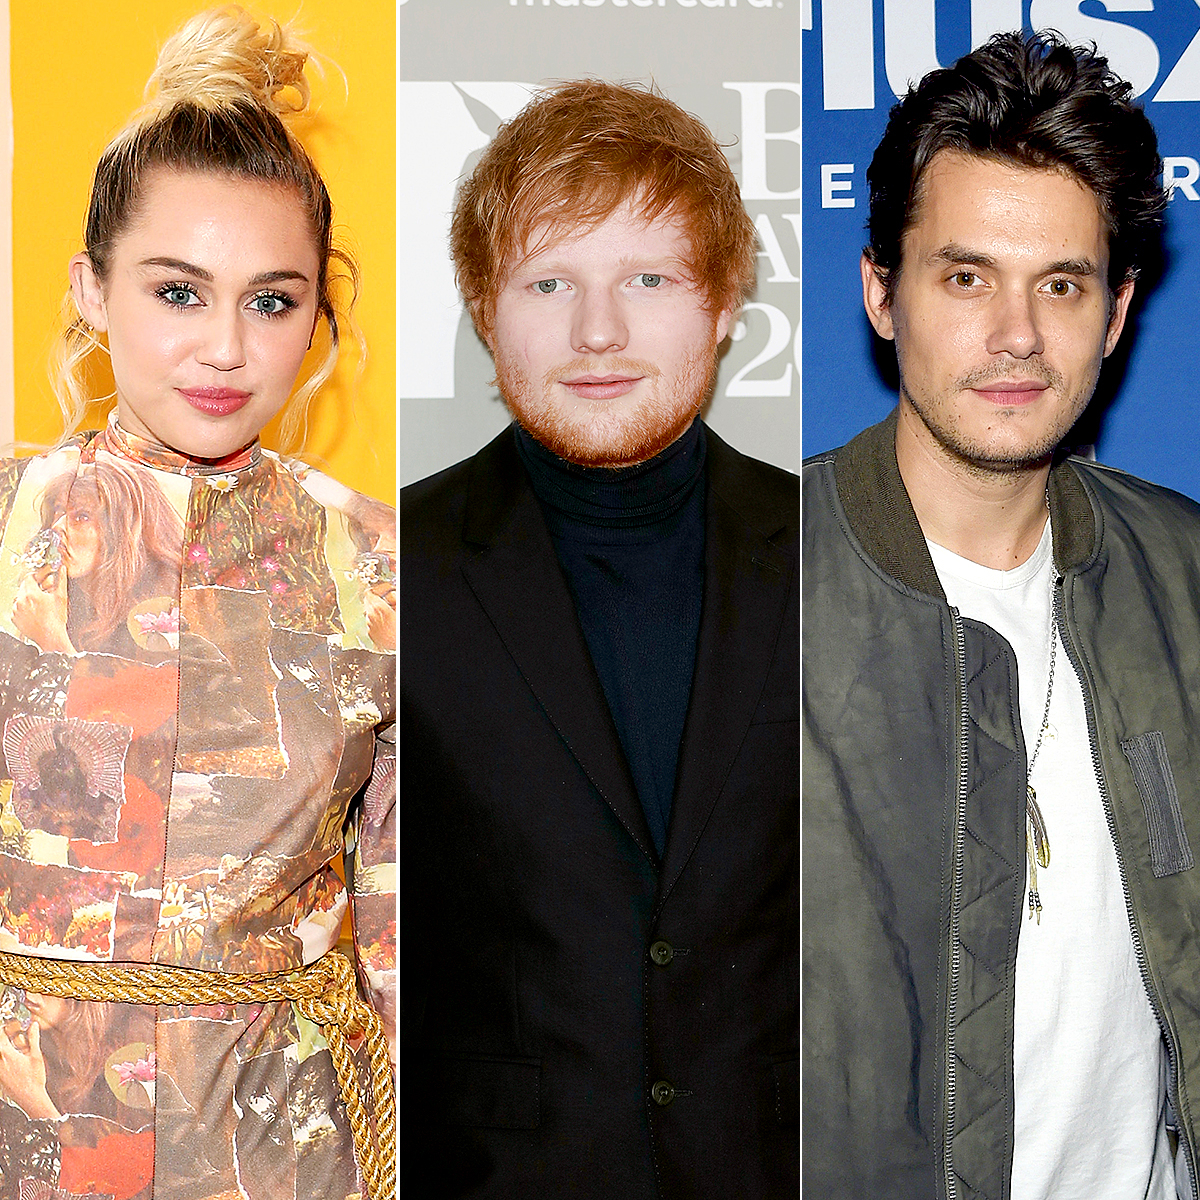 Miley Cyrus, Ed Sheeran, and John Mayer